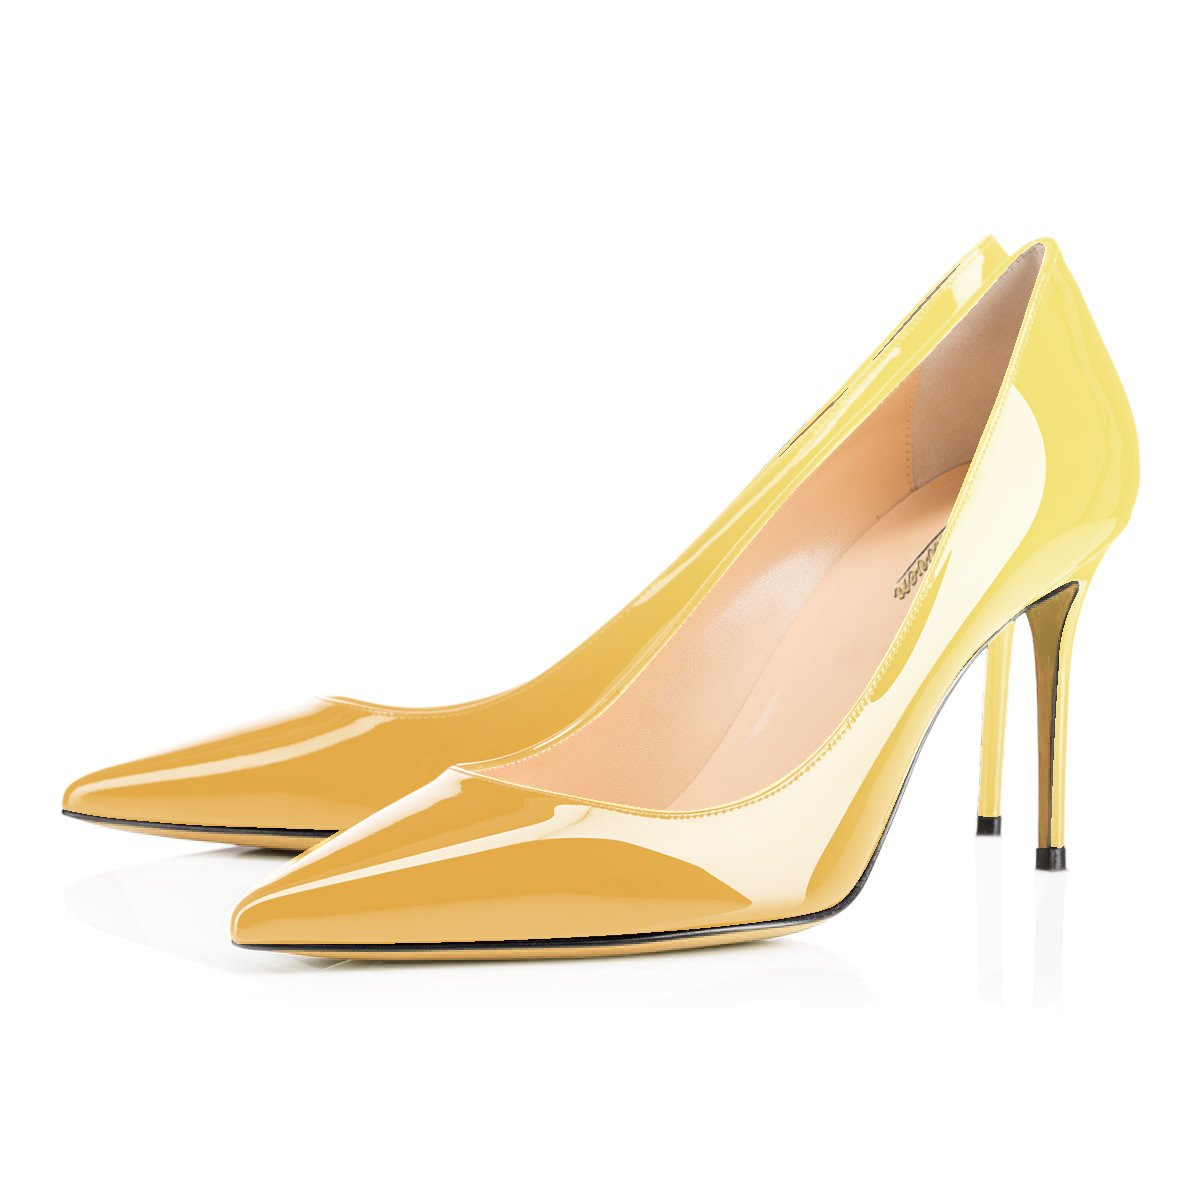 Modemoven Women's Yellow Pointed Toe Pumps Slip-on Office Business High Heels Sexy Stiletto Shoes 10 M US by Modemoven (Image #3)